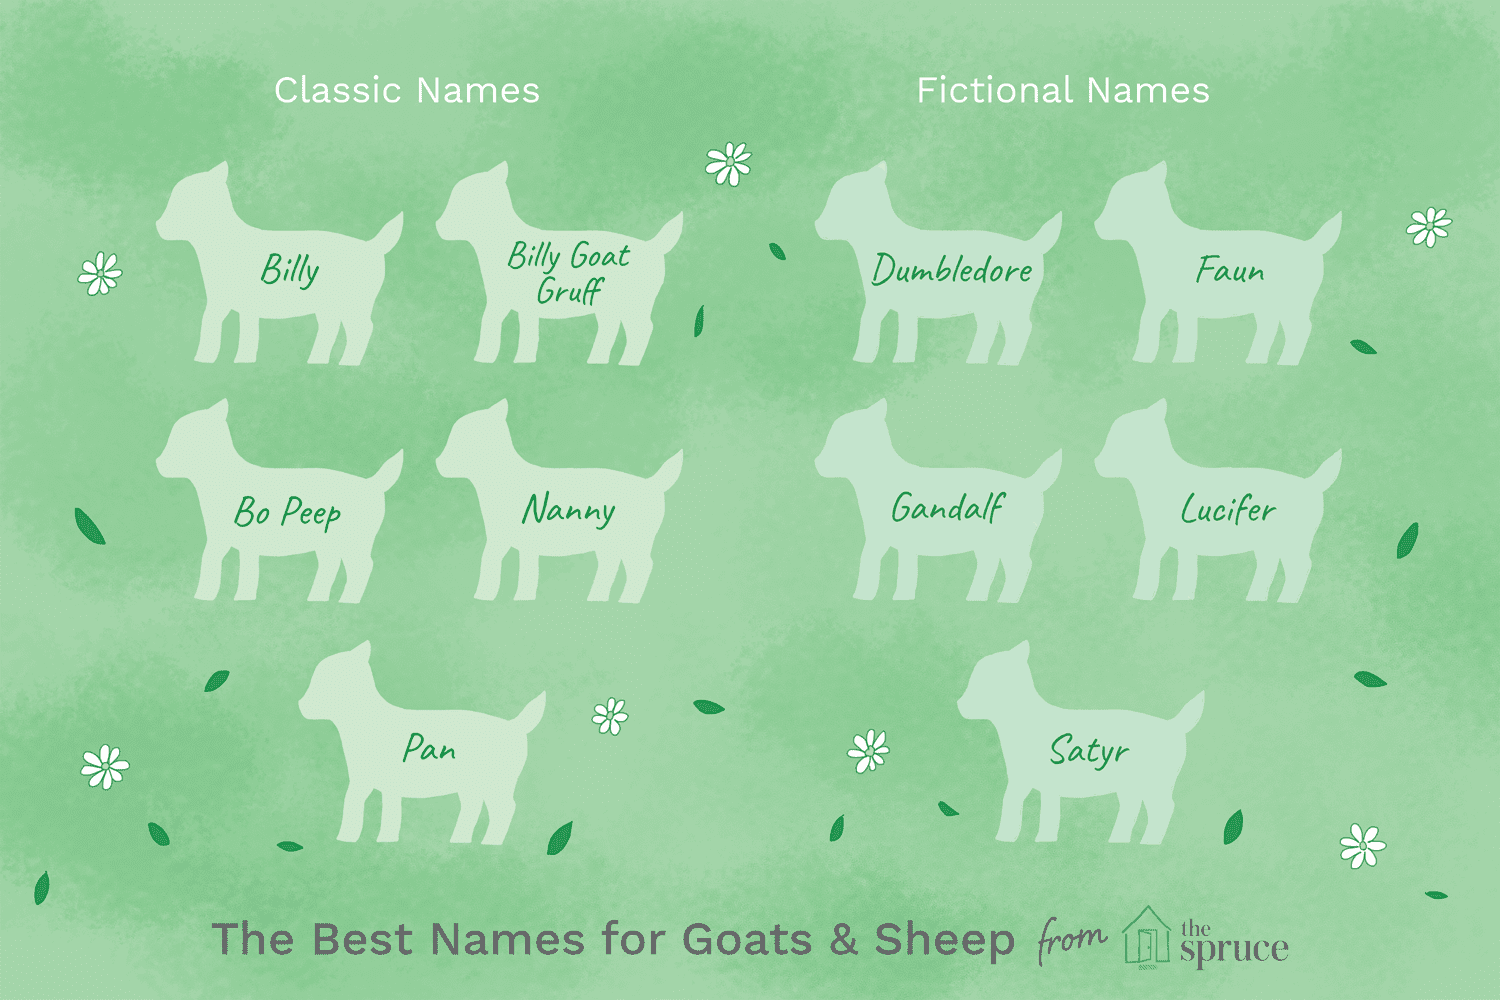 54 Name Suggestions for Pet Goats and Sheep